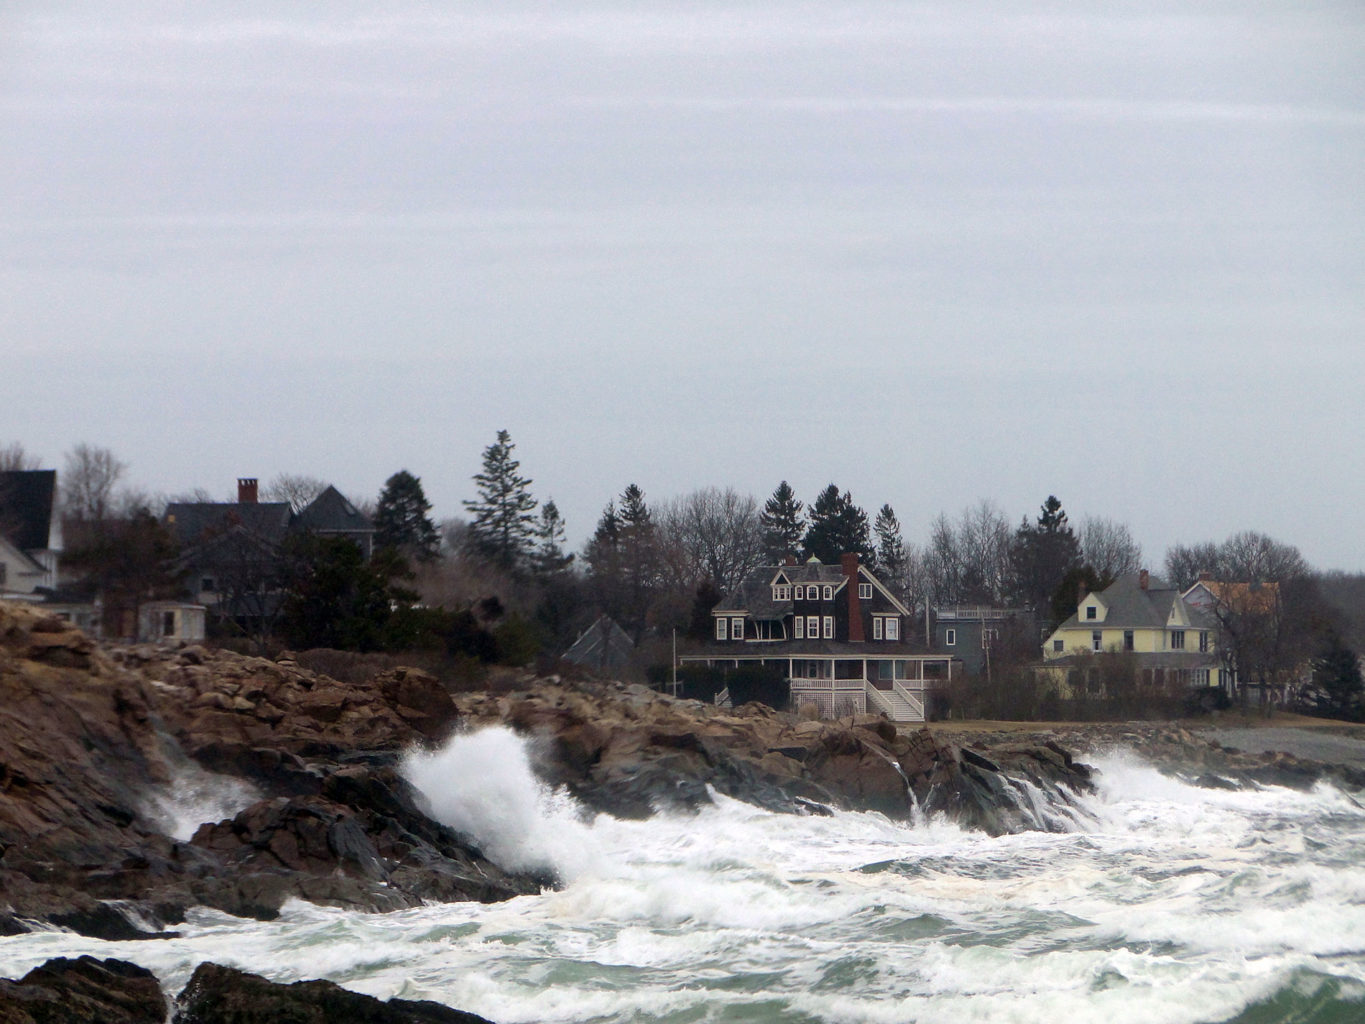 York Maine homes and ocean waves